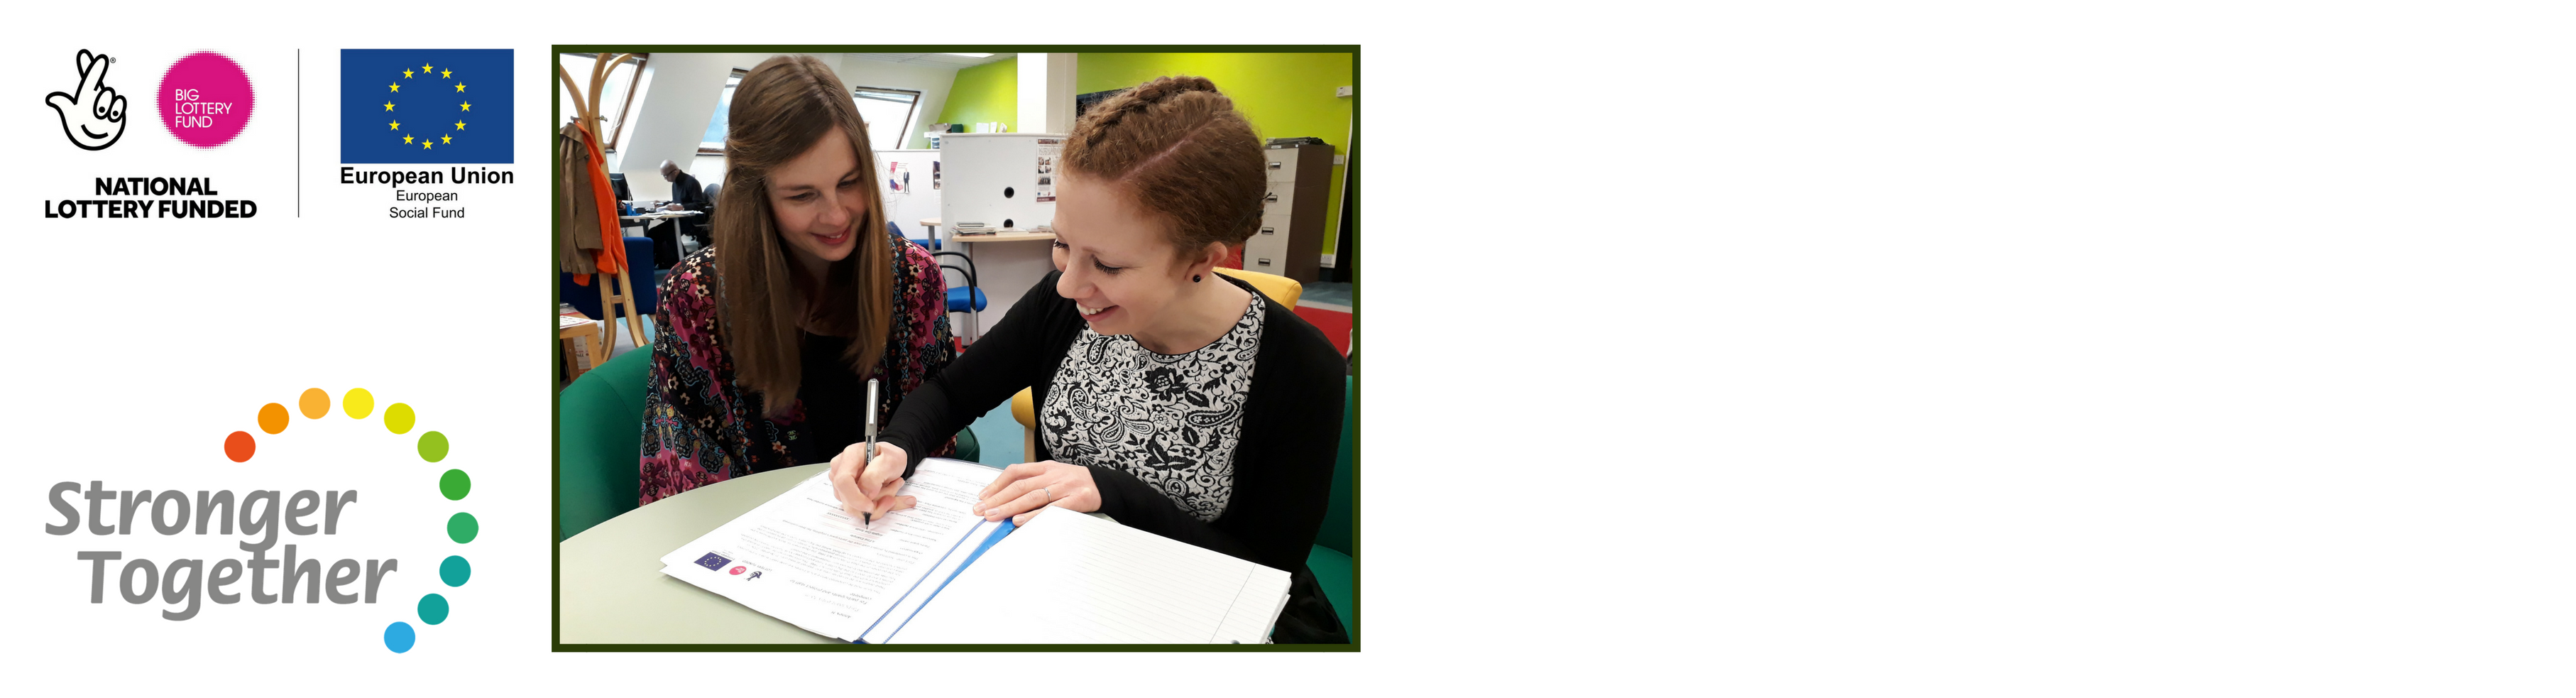 Stronger Together - image of two women completing forms, smiling